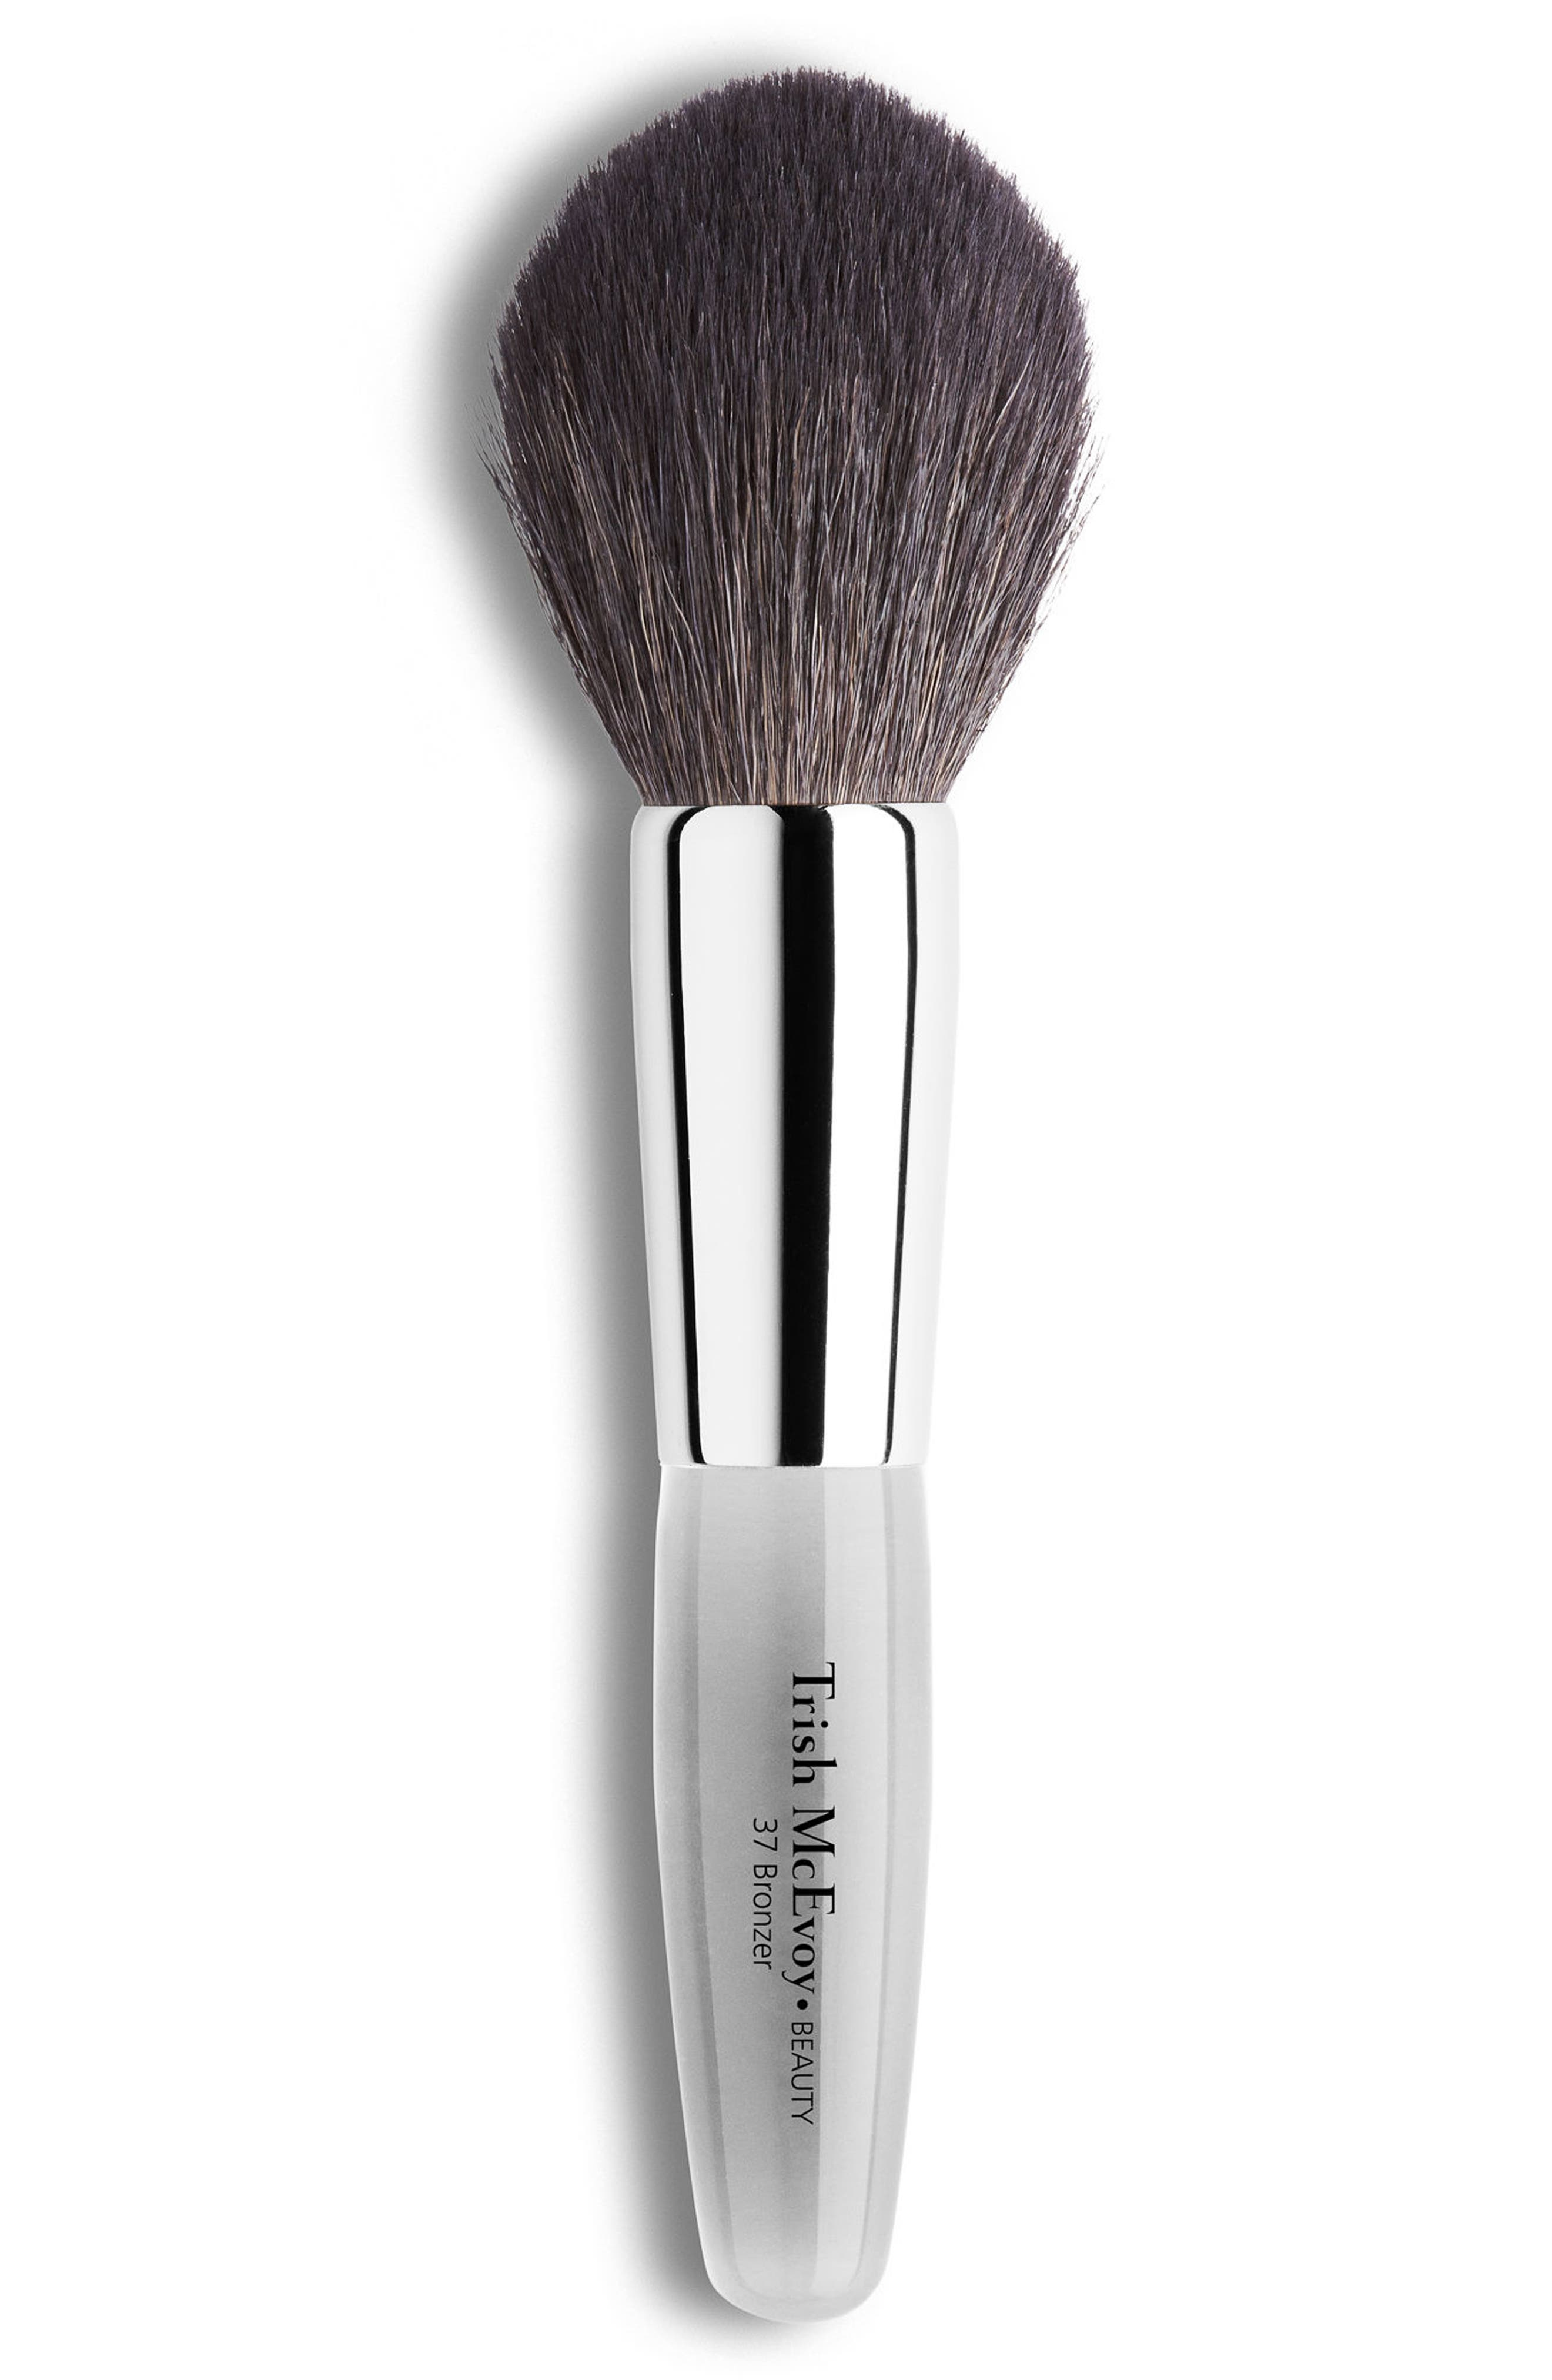 #37 Bronzer Brush,                         Main,                         color, No Color